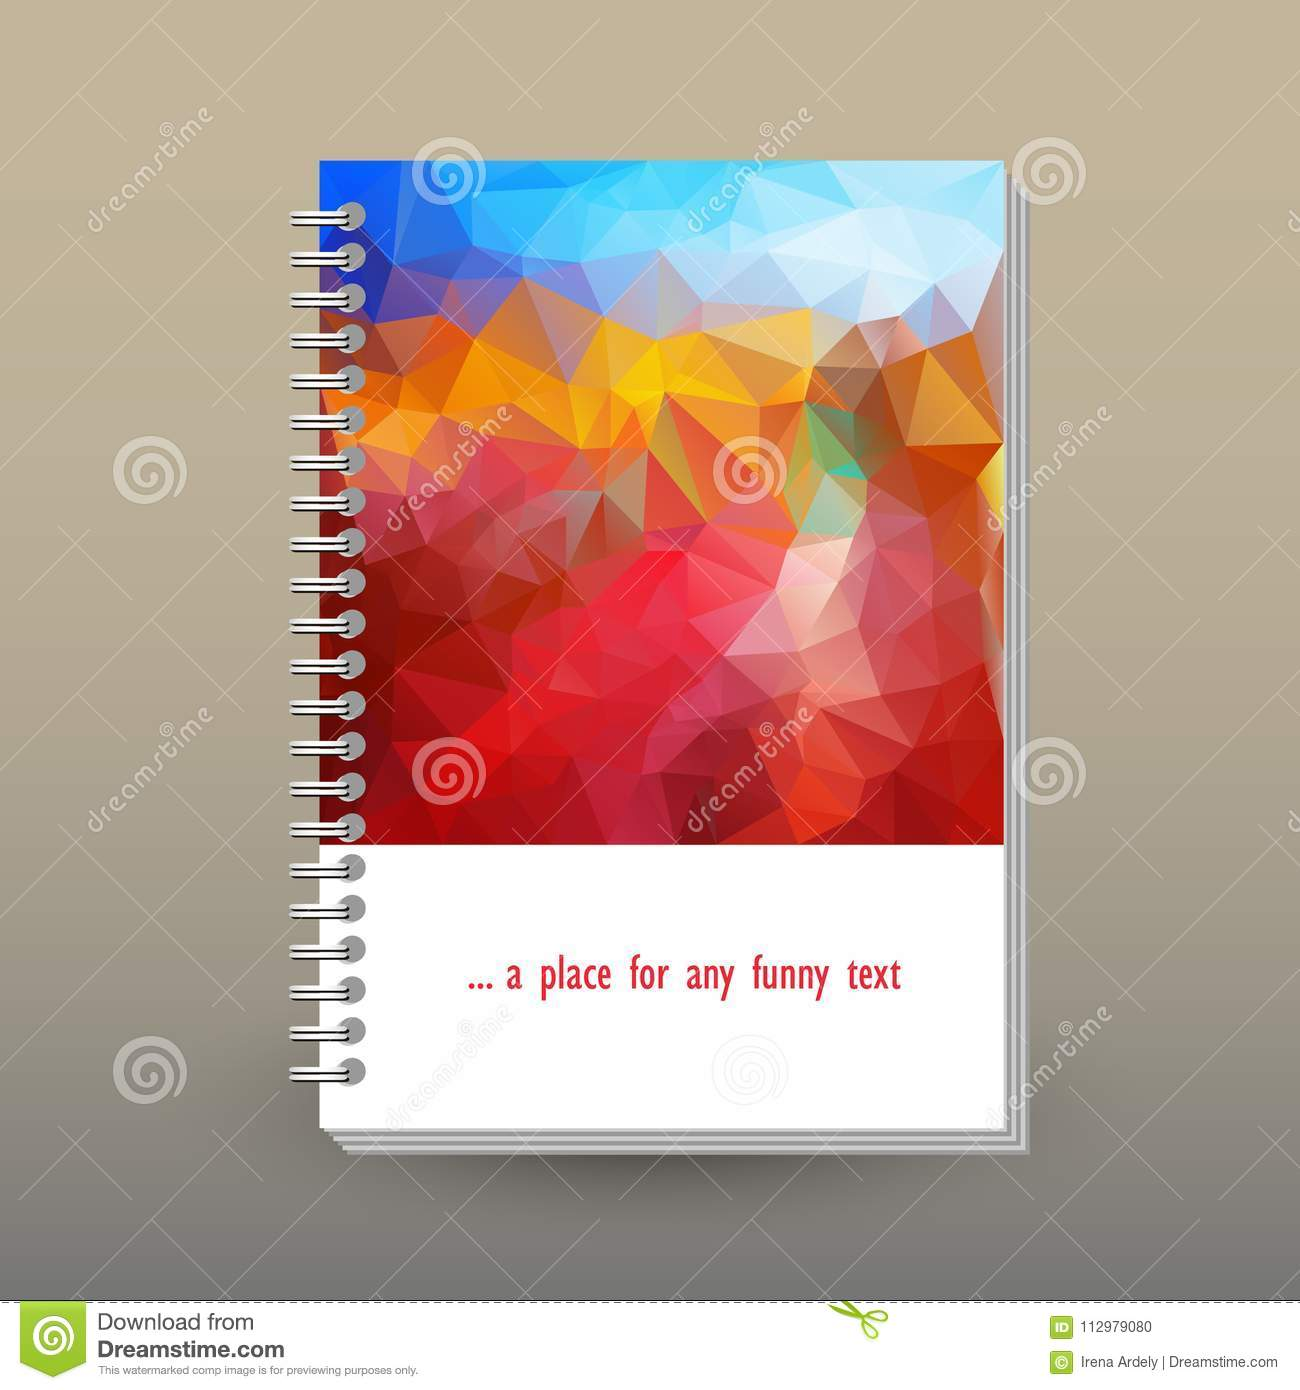 Vector cover of diary with ring spiral binder - format A5 - layout brochure concept - blue sky over red, orange and ye